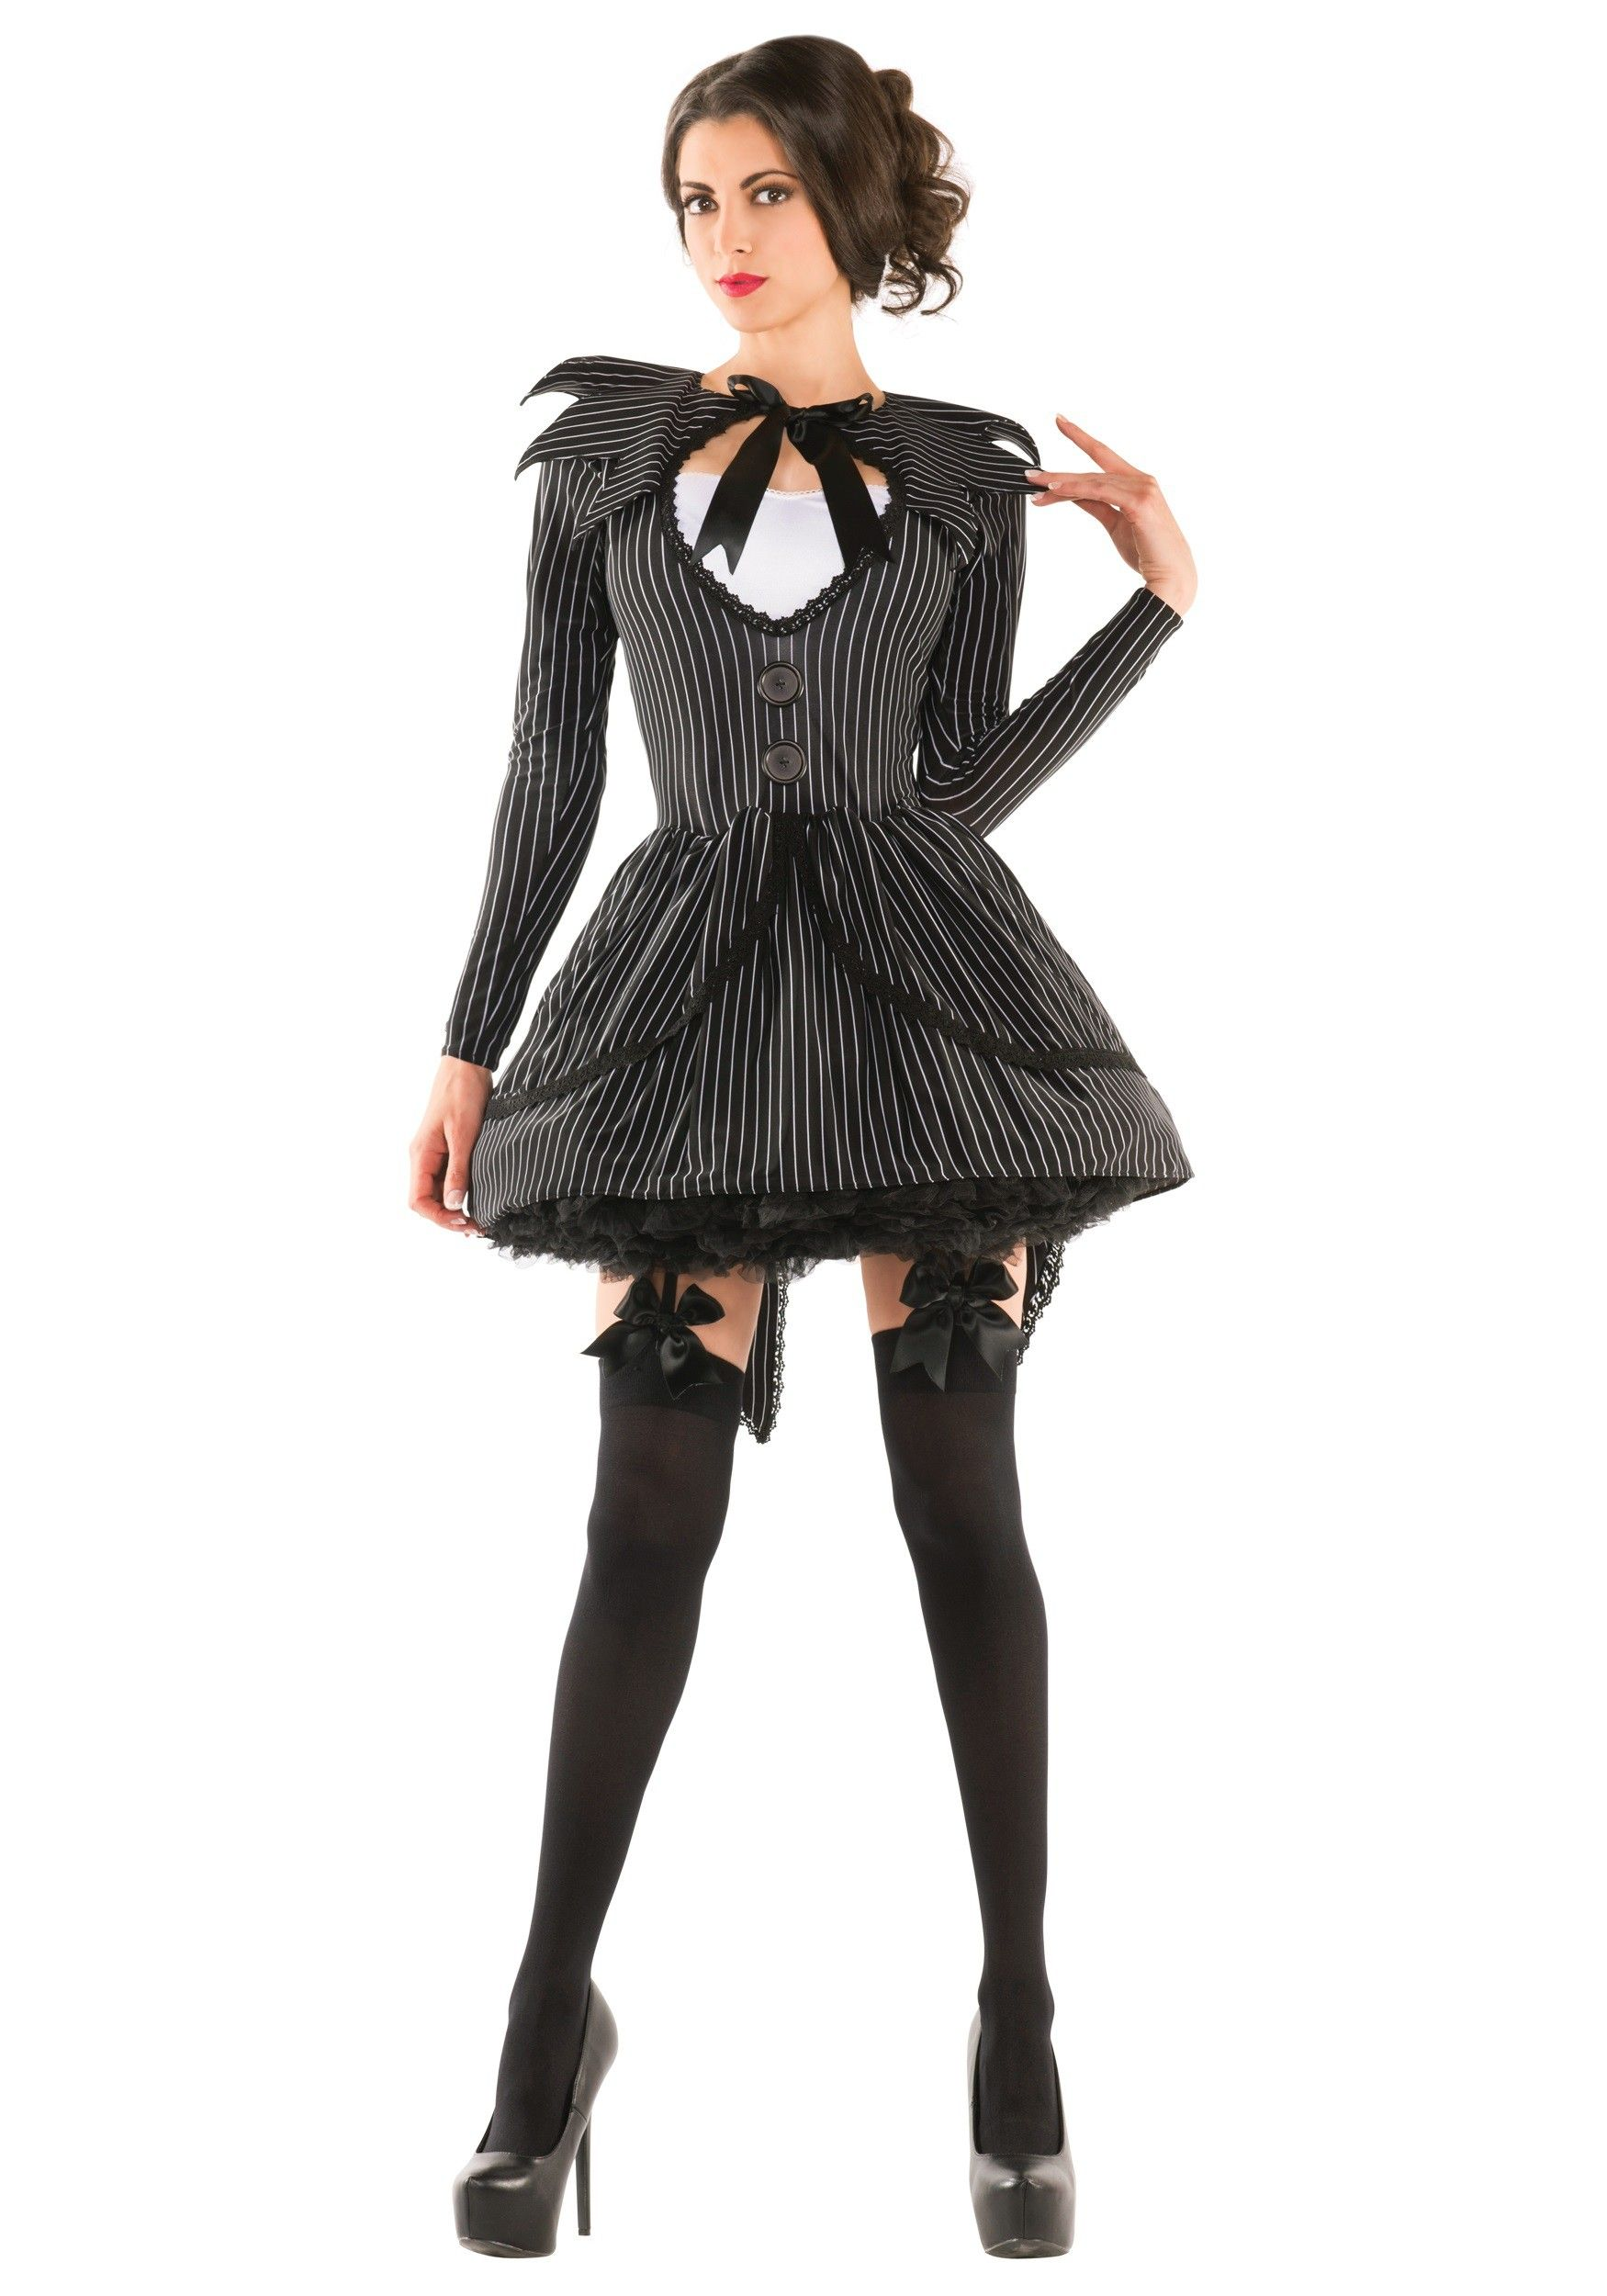 Bad Dreams Babe Adult Costume Genderbend Jack Skeleington